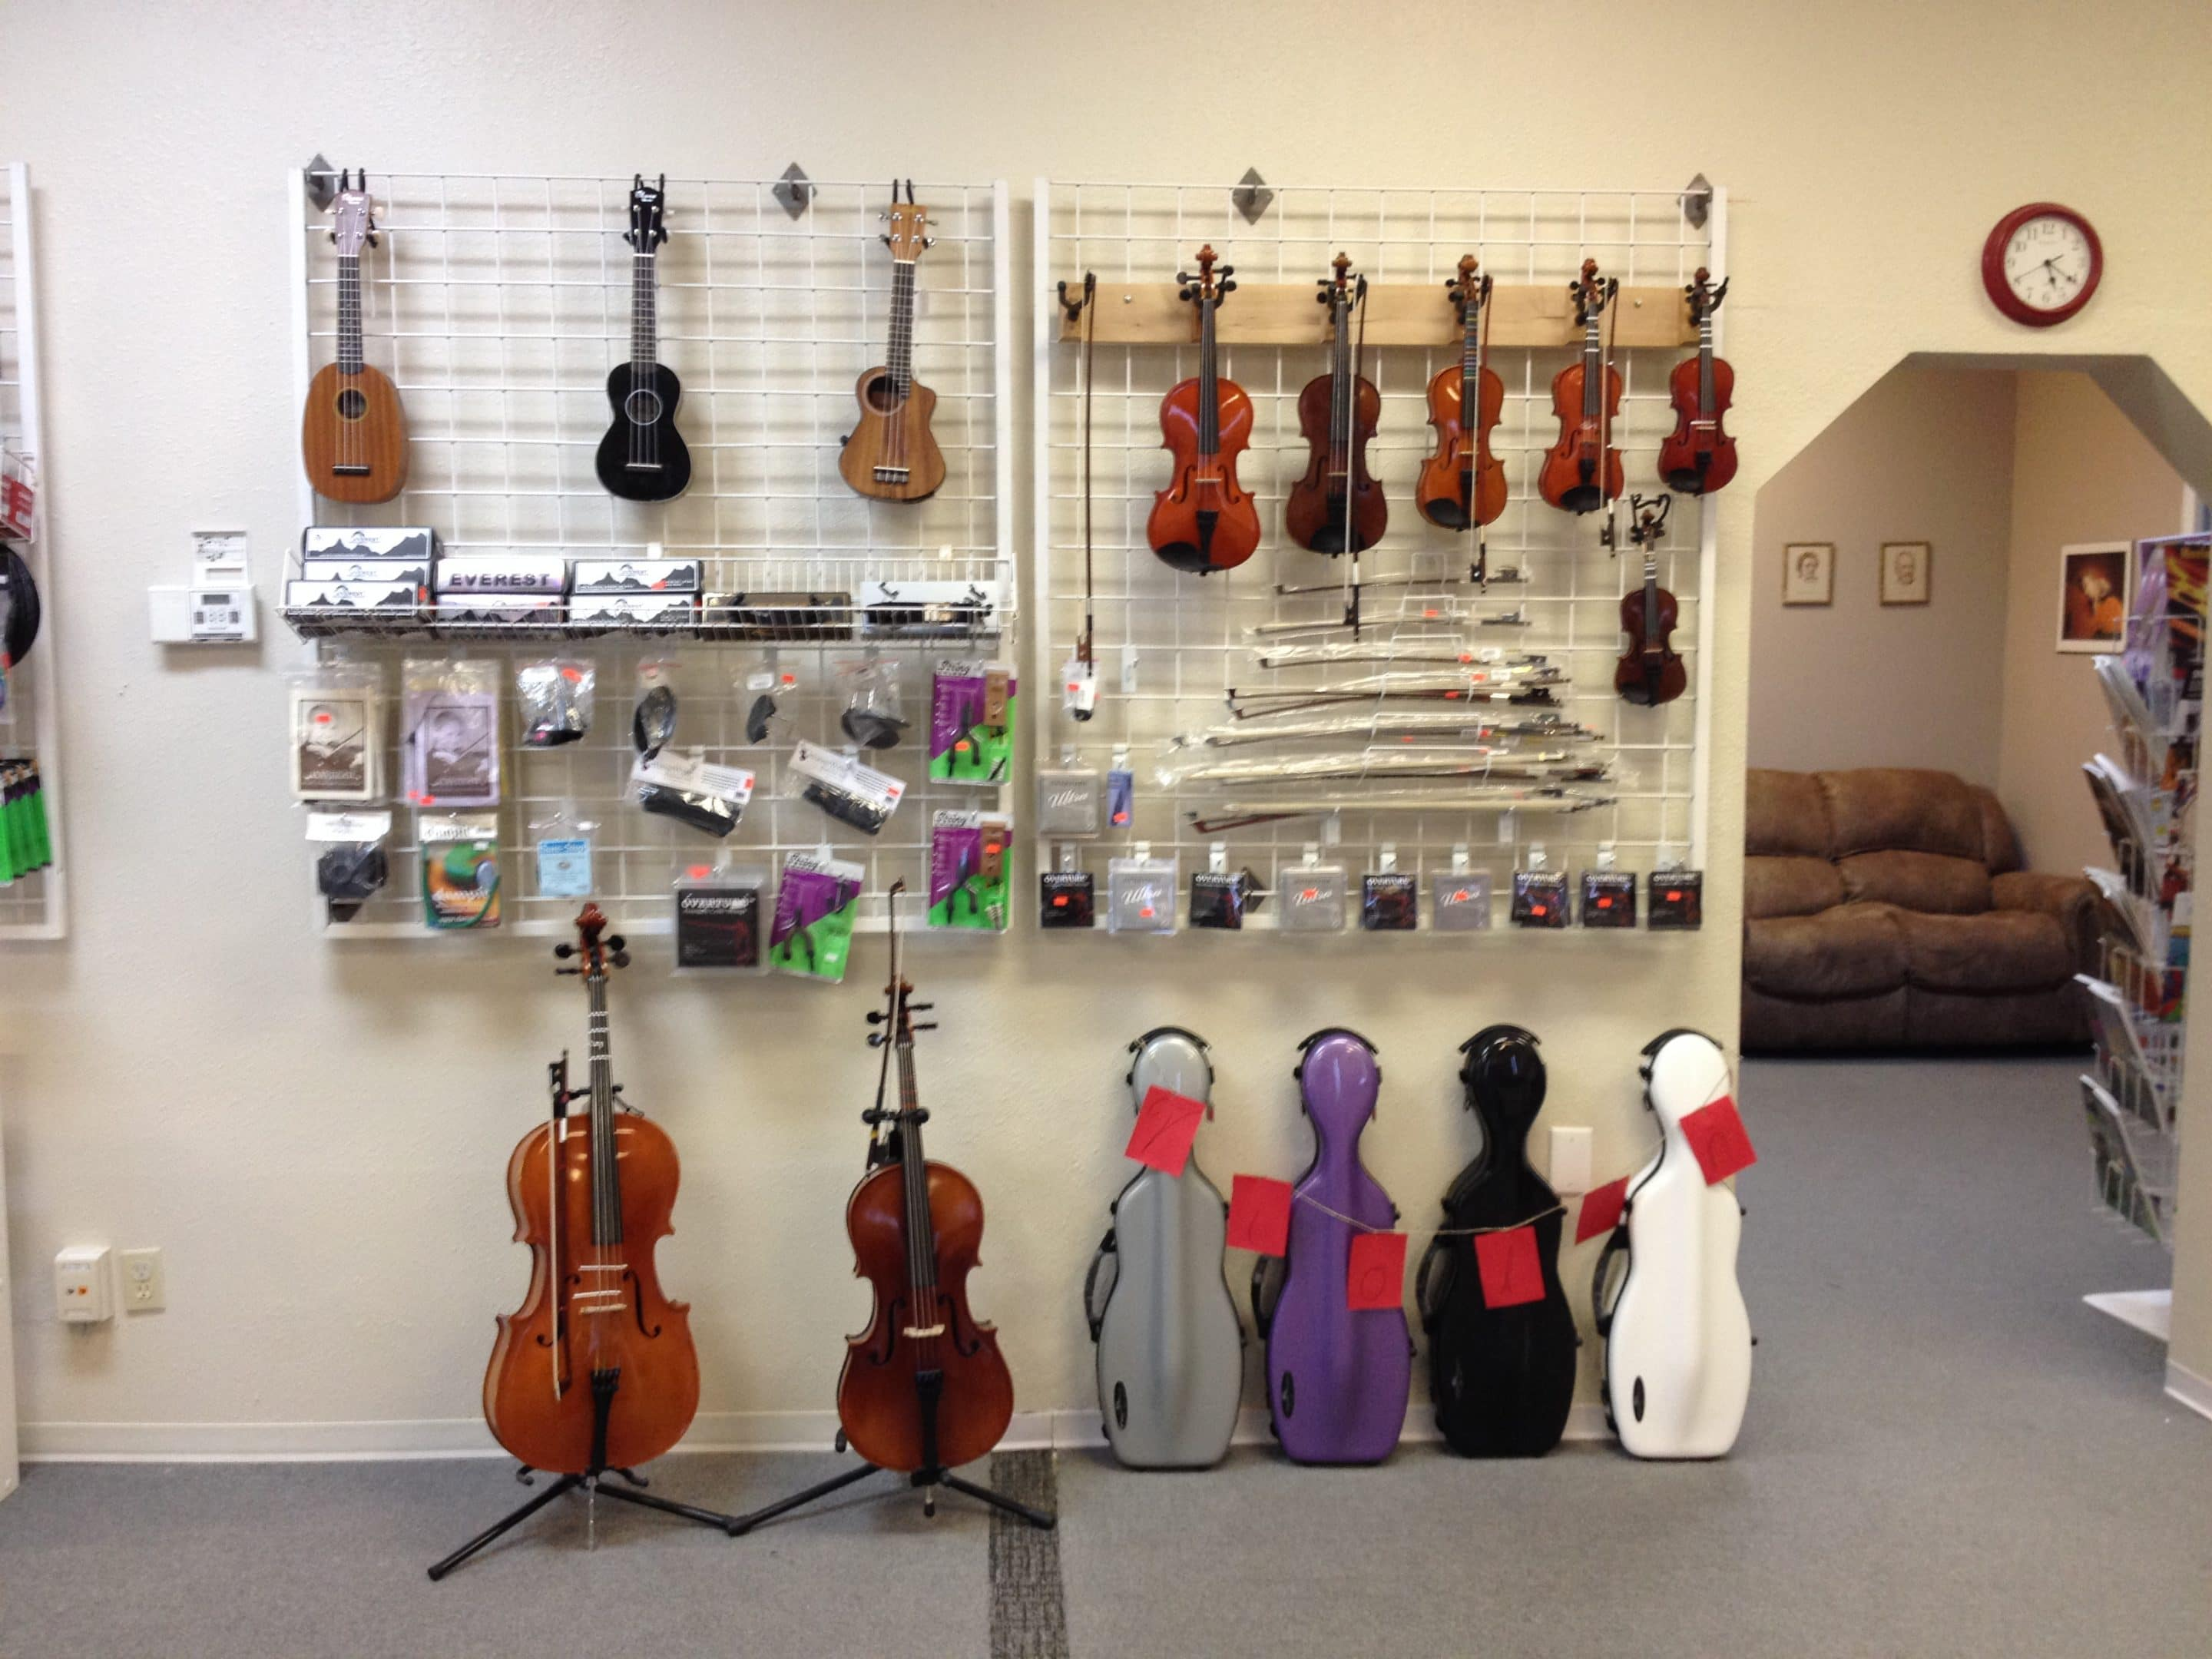 Quality Ukuleles available for sale.